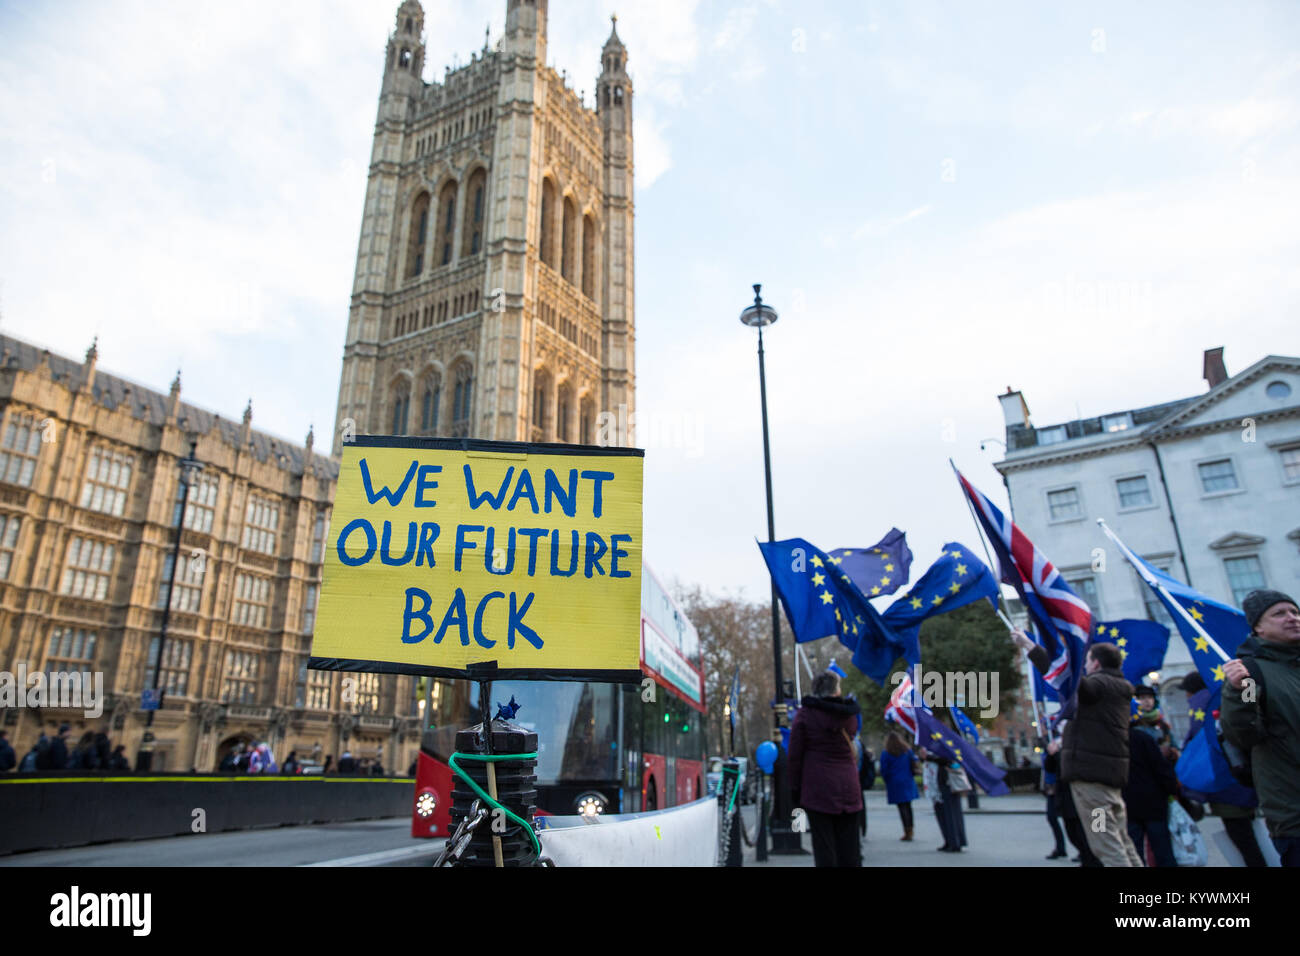 London, UK. 16th Jan, 2018. Anti-Brexit protesters from Sodem wave European Union flags and Union Jacks during a - Stock Image